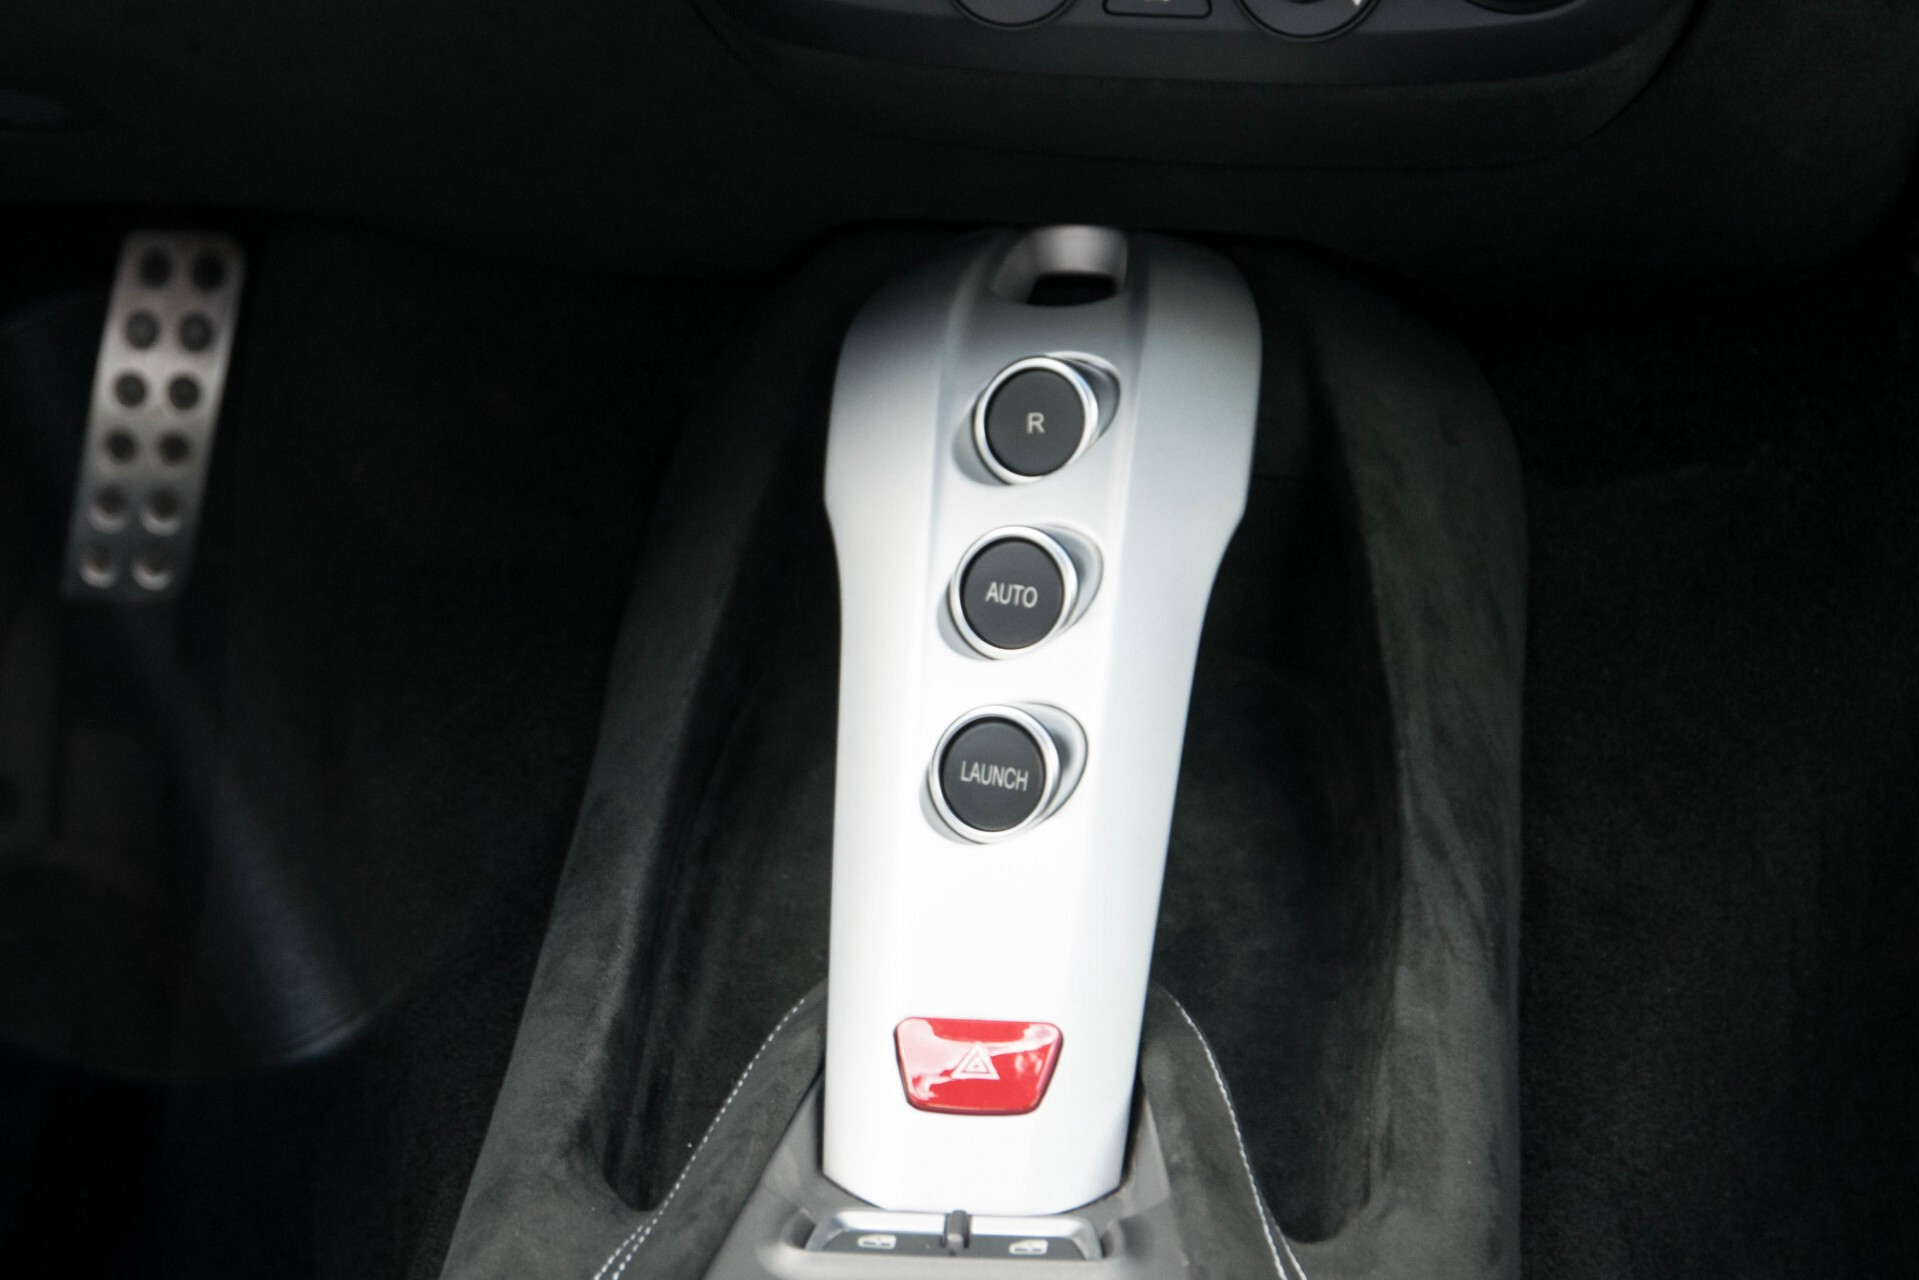 Ferrari F12 6.3 Berlinetta Capristo/Carbonseats/Led/Passenger Display Aut7 Foto 12